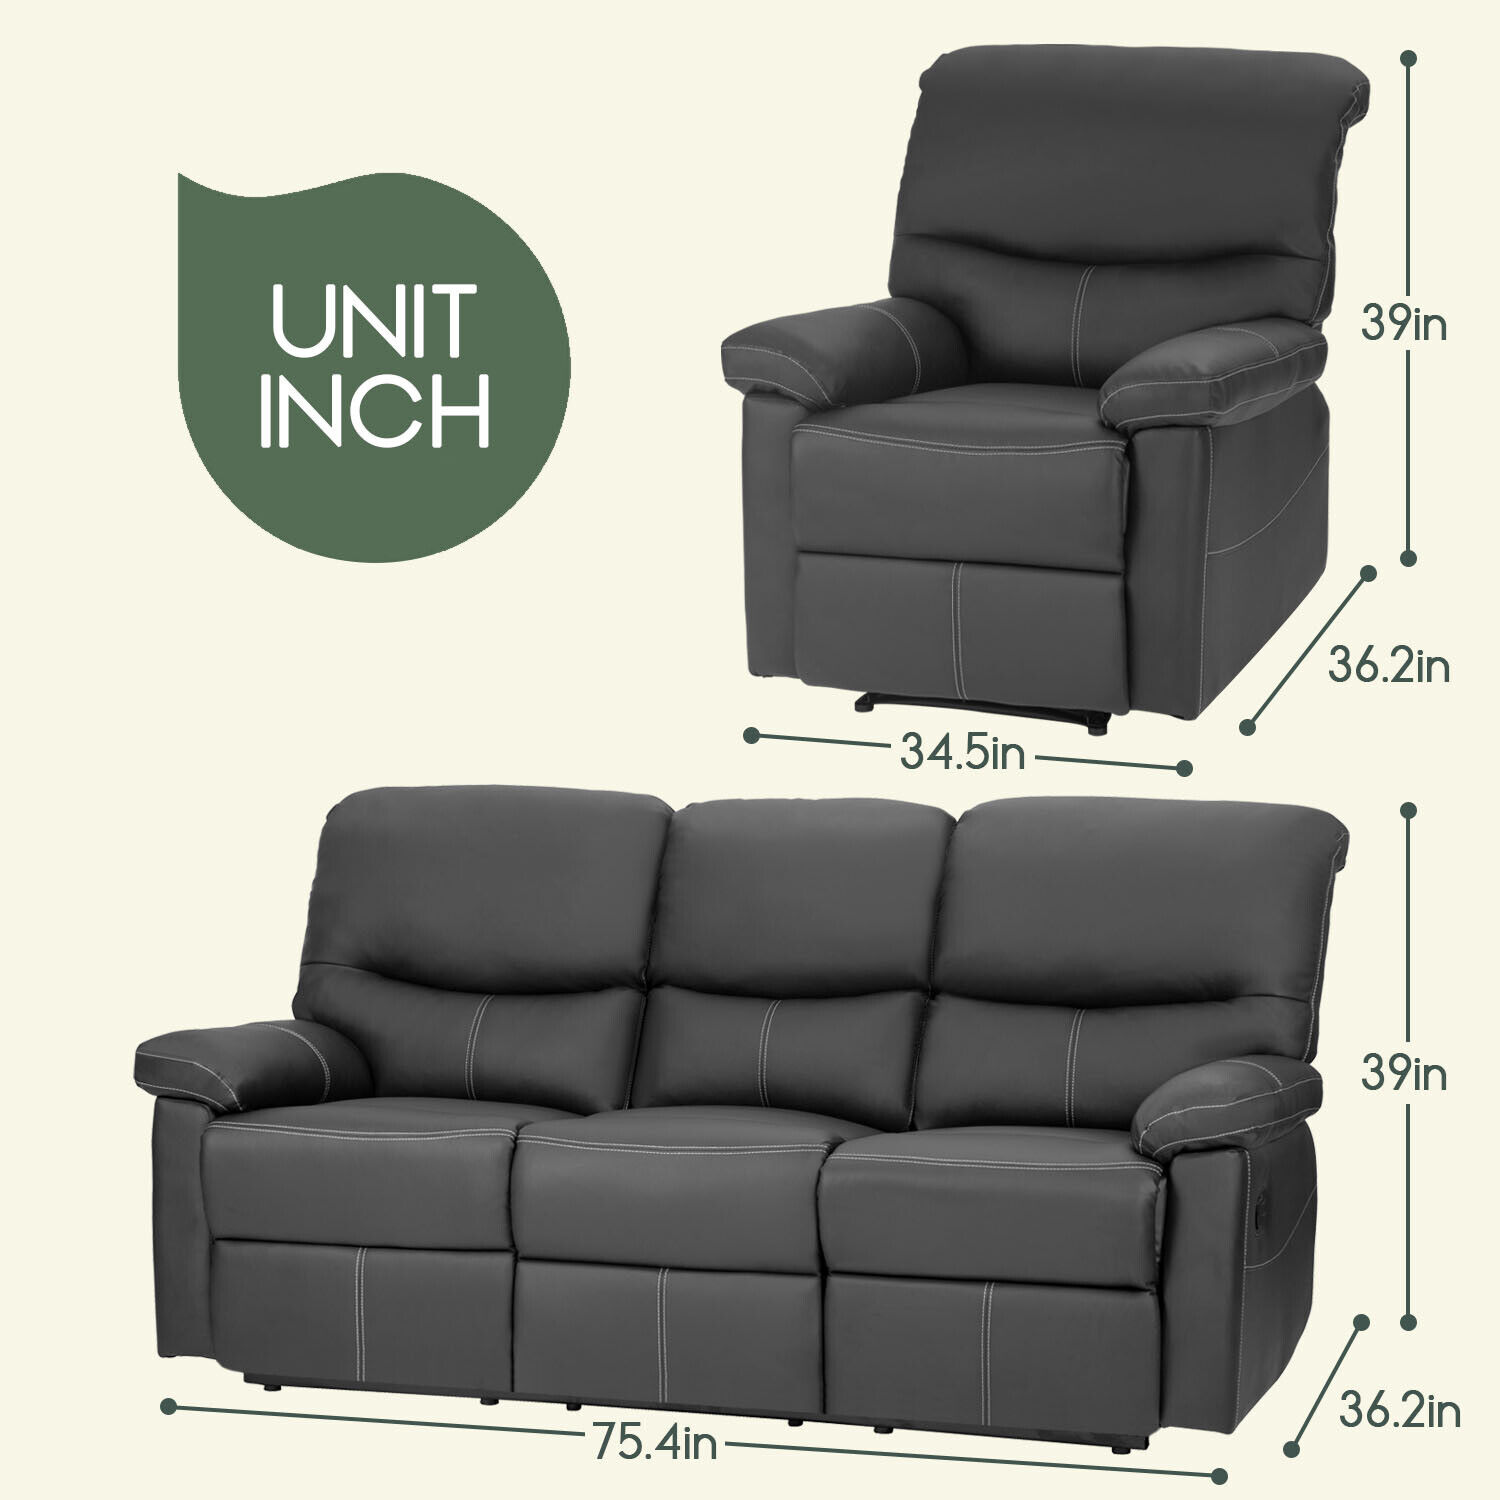 Recliner sofa leather living room 3 seater Home Theater Seating Furniture